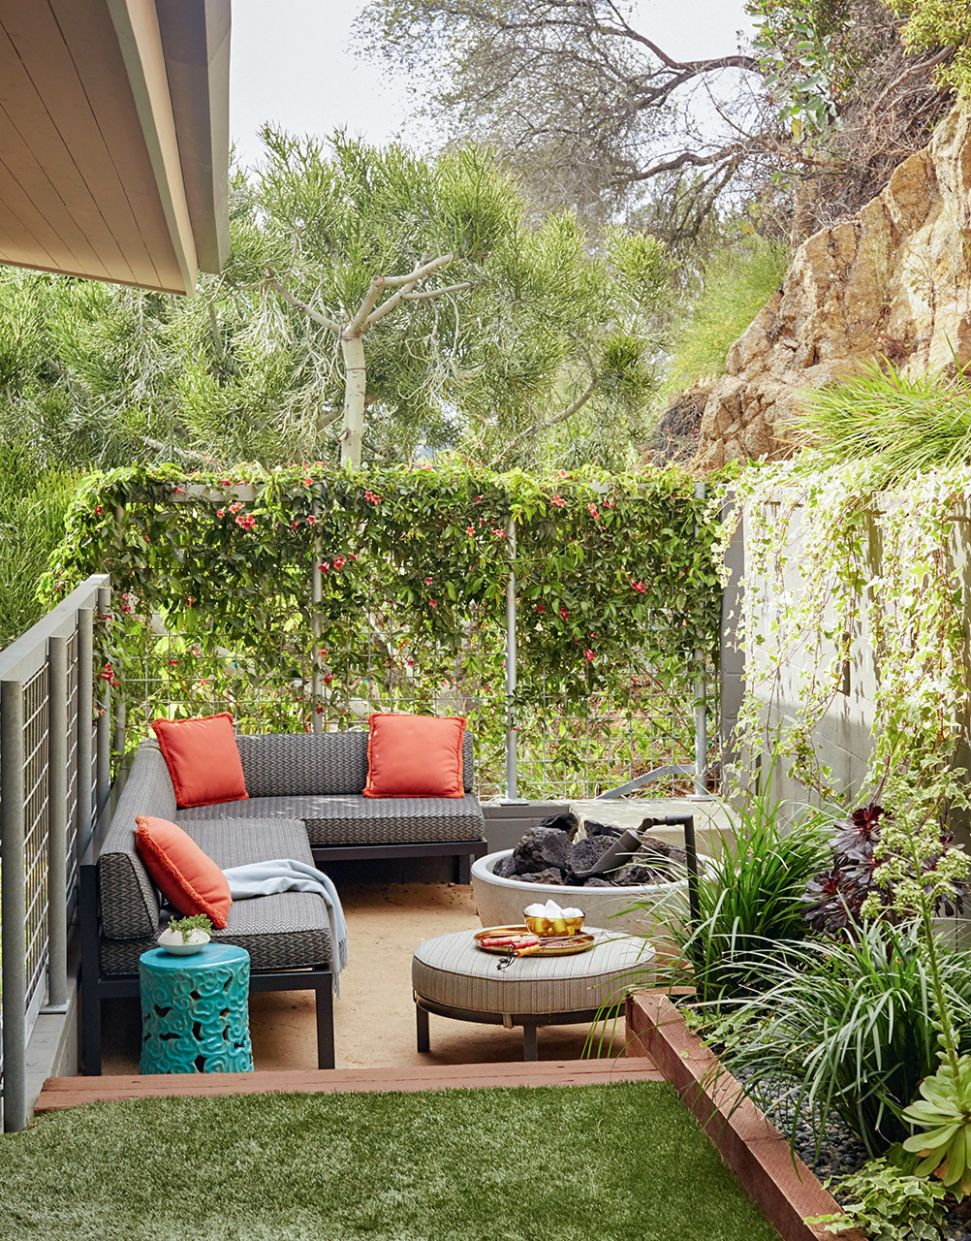 9 Budget-Friendly Backyard Ideas to Create the Ultimate Outdoor ..